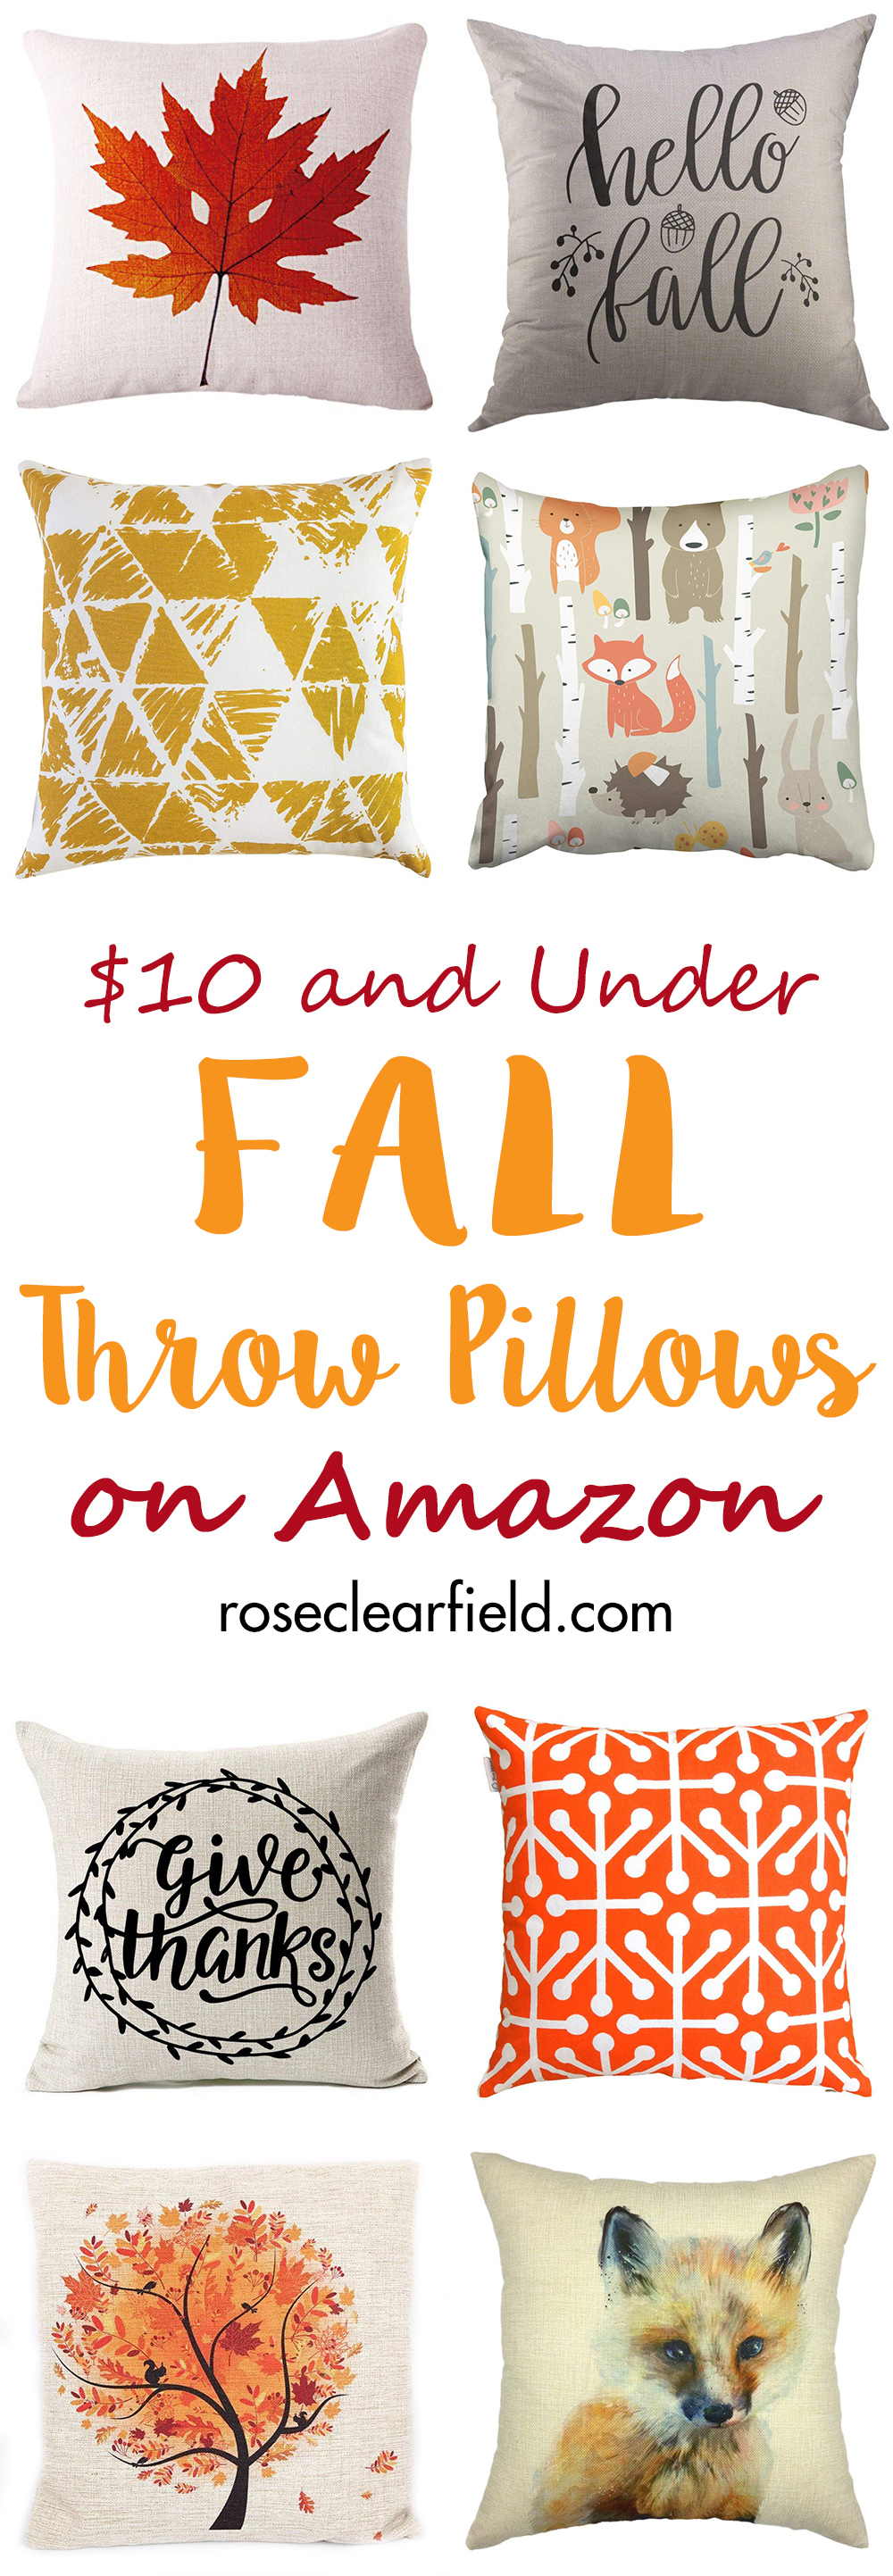 $10 and Under Fall Throw Pillows on Amazon   https://www.roseclearfield.com